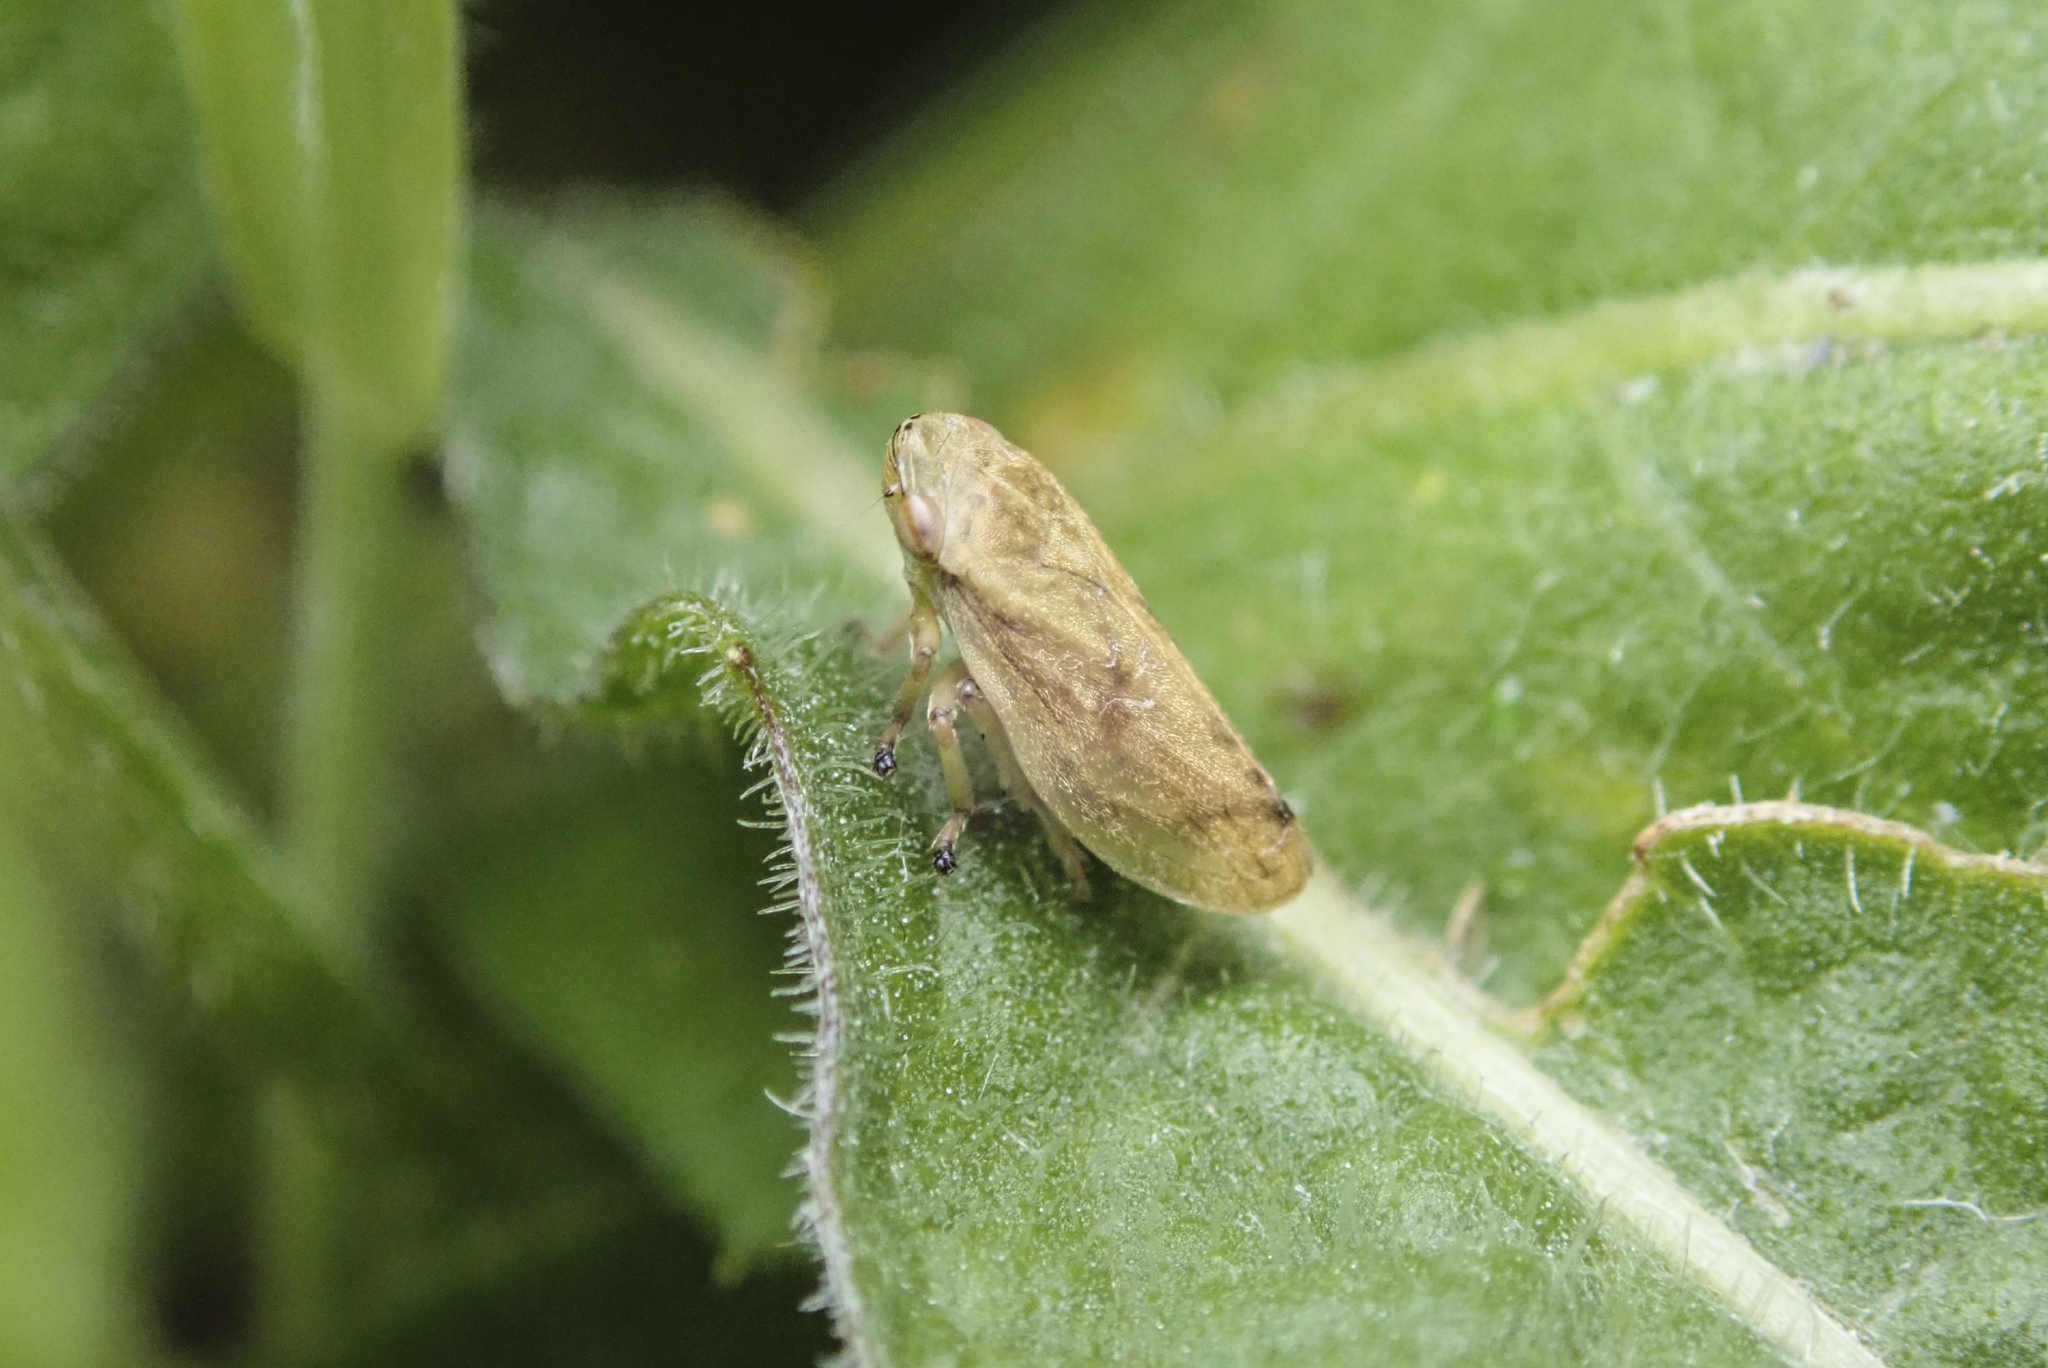 Meadow spittlebug on leaf